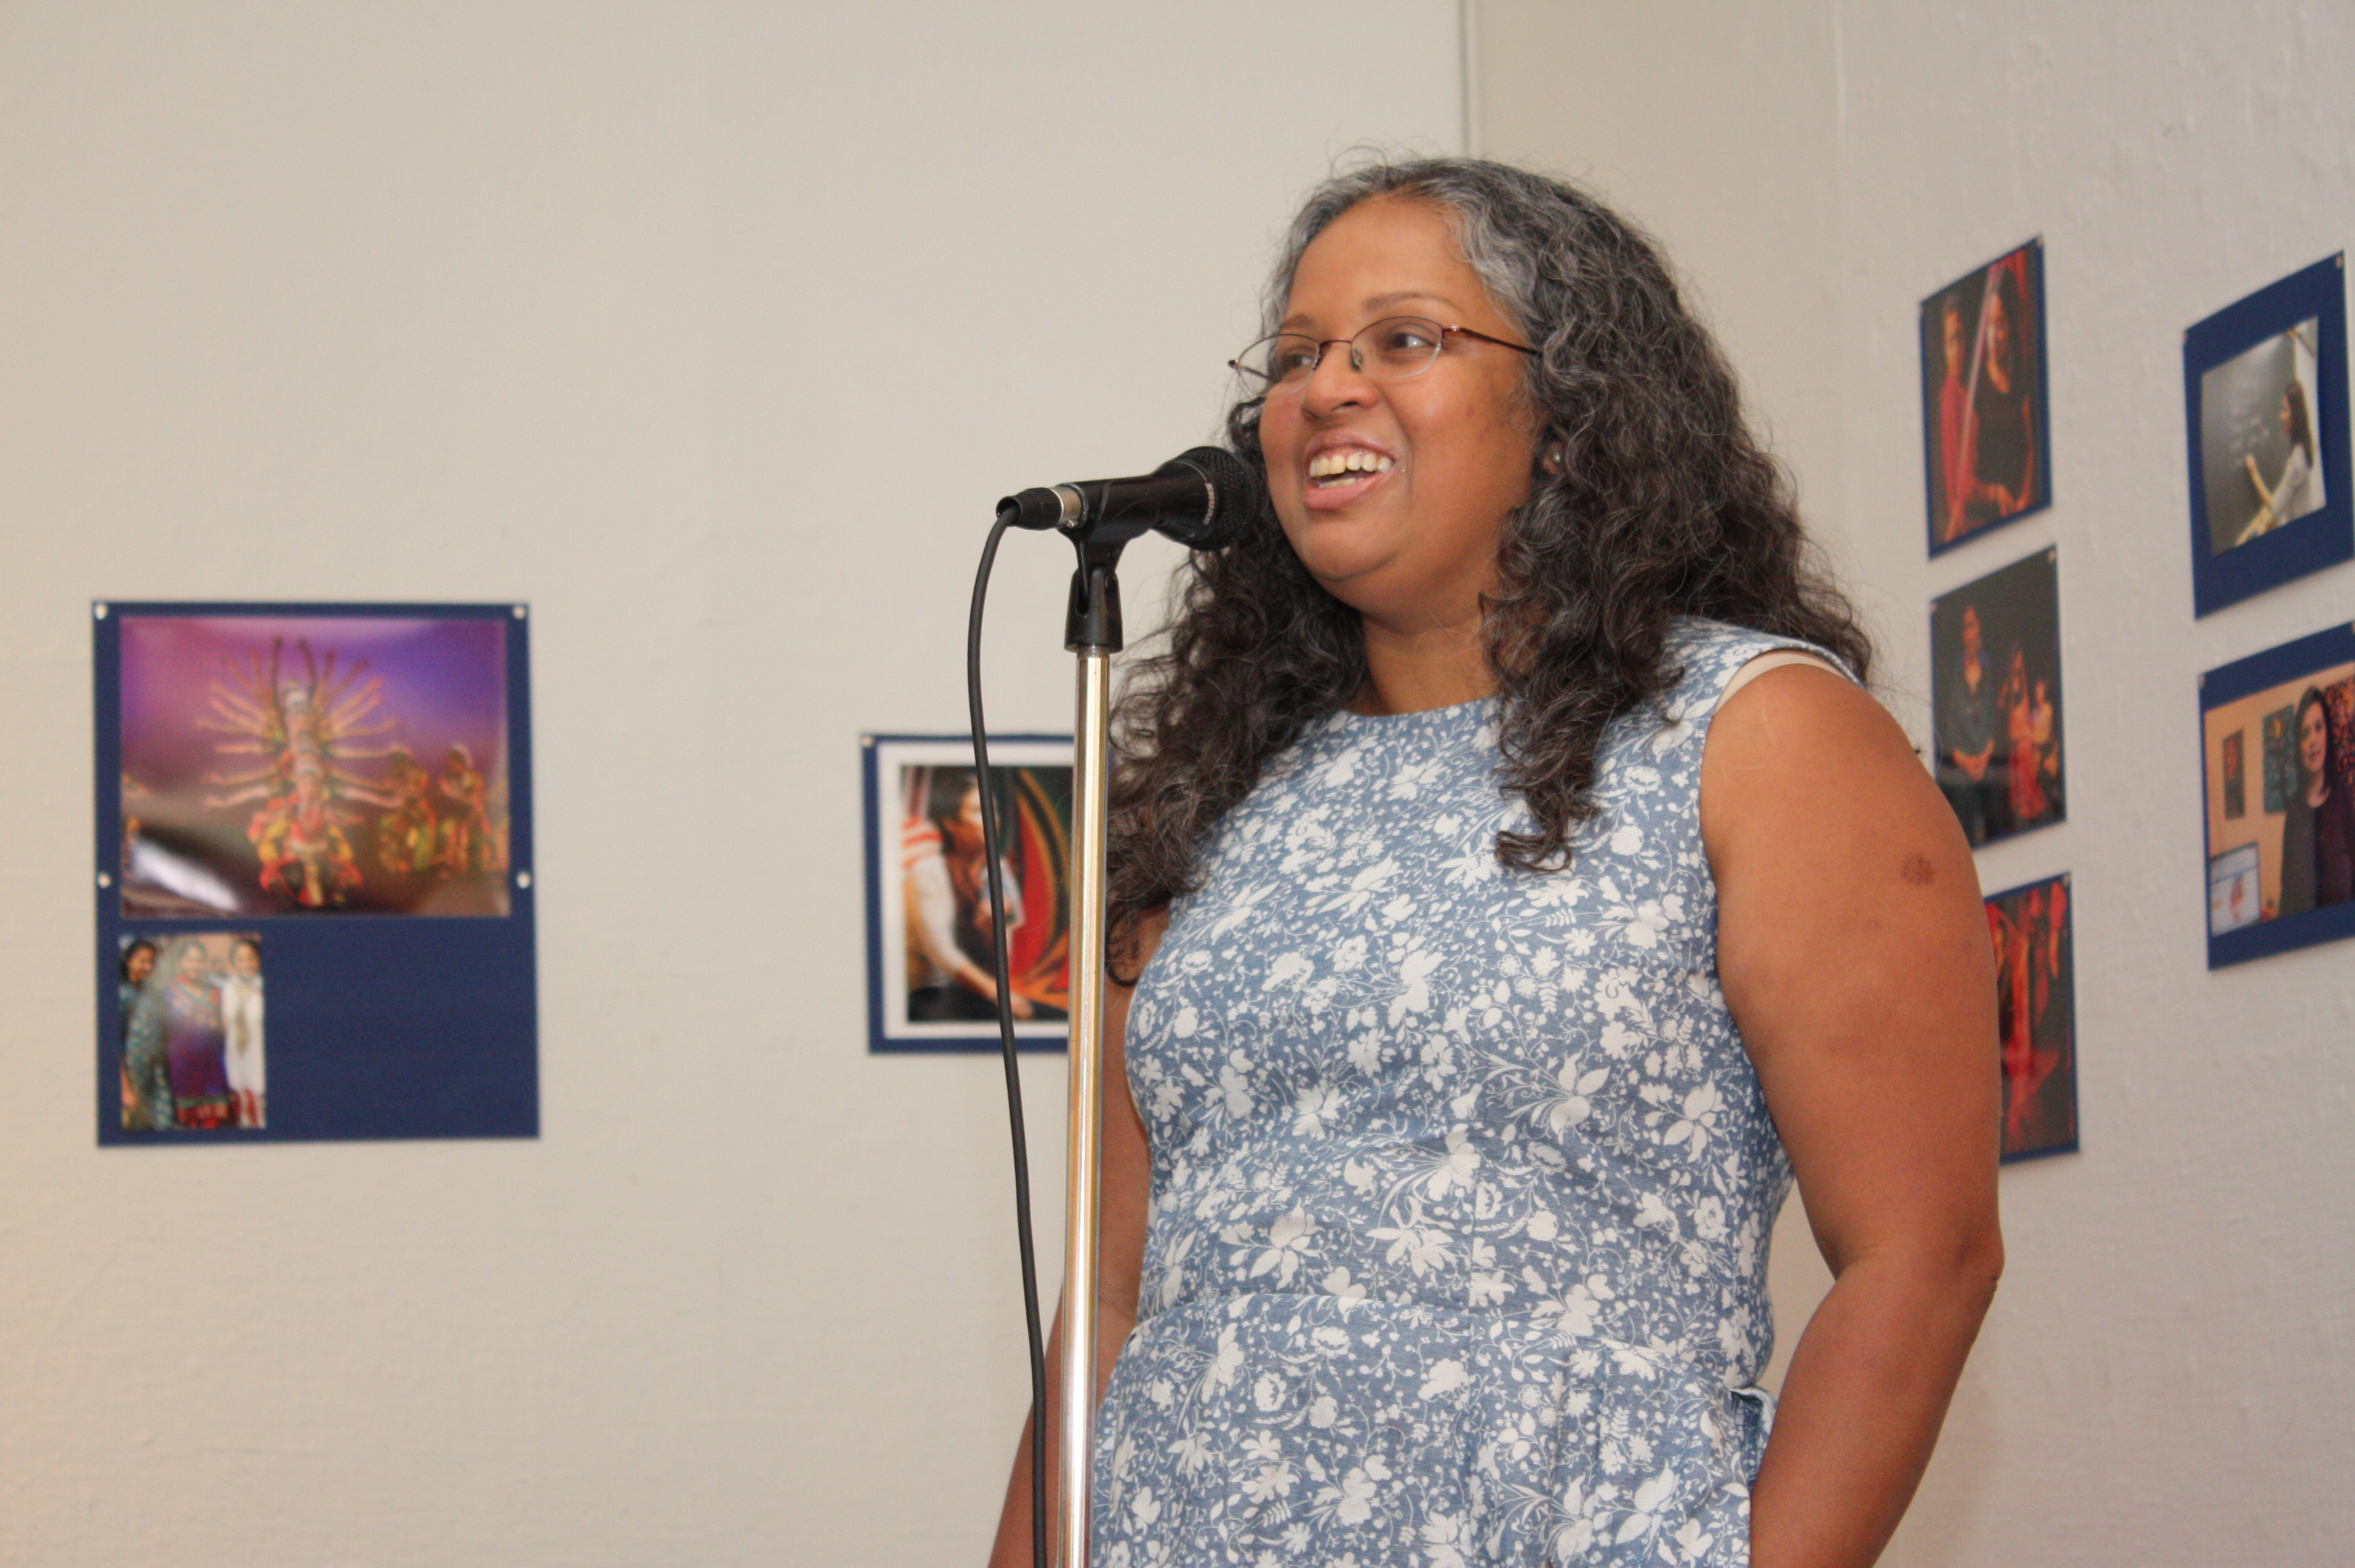 Mary Anne Mohanraj, festival director, at the opening night reception